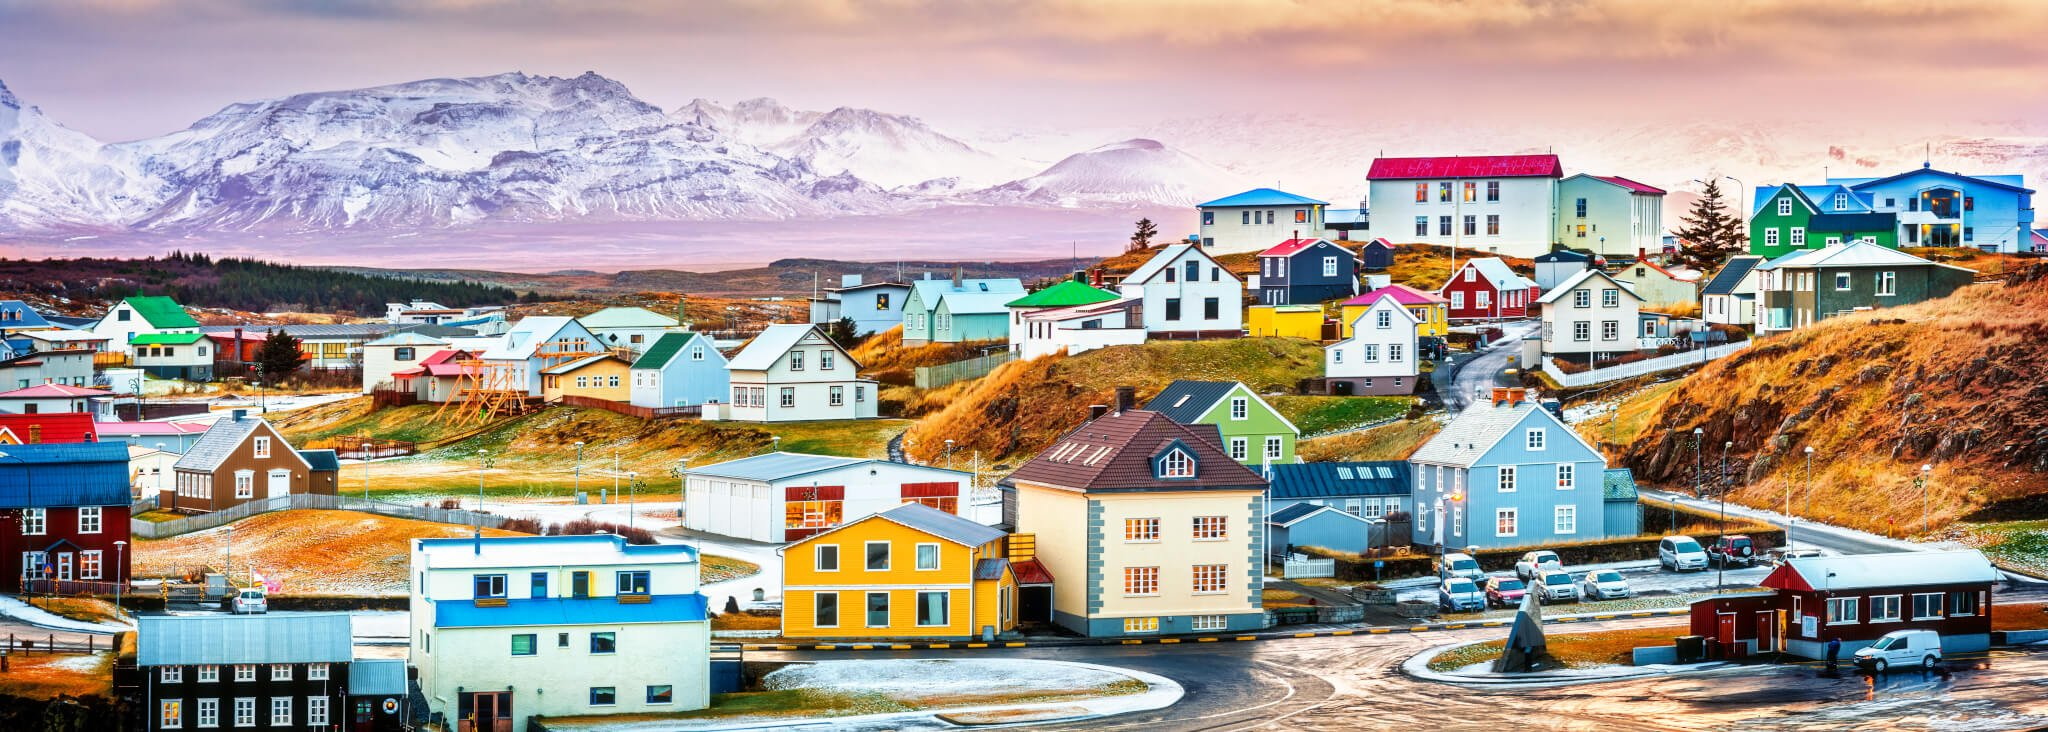 The 10 BEST Budget Travel Destinations for 2019 - Thrifty Nomads